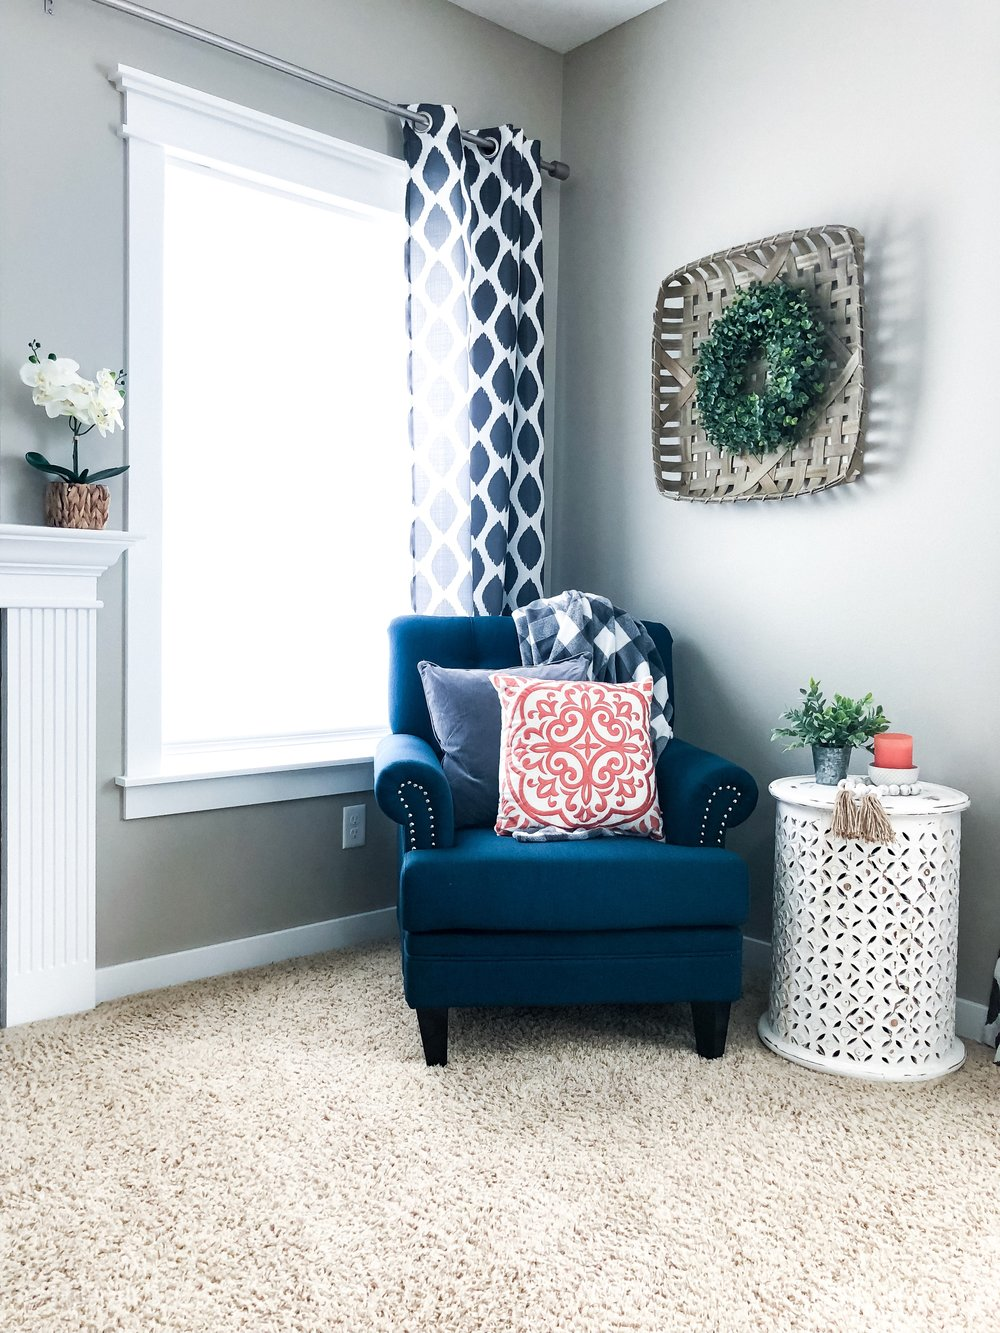 5 Tips to Decorate Your House—When You Don't Love to Decorate | hprallandco.com